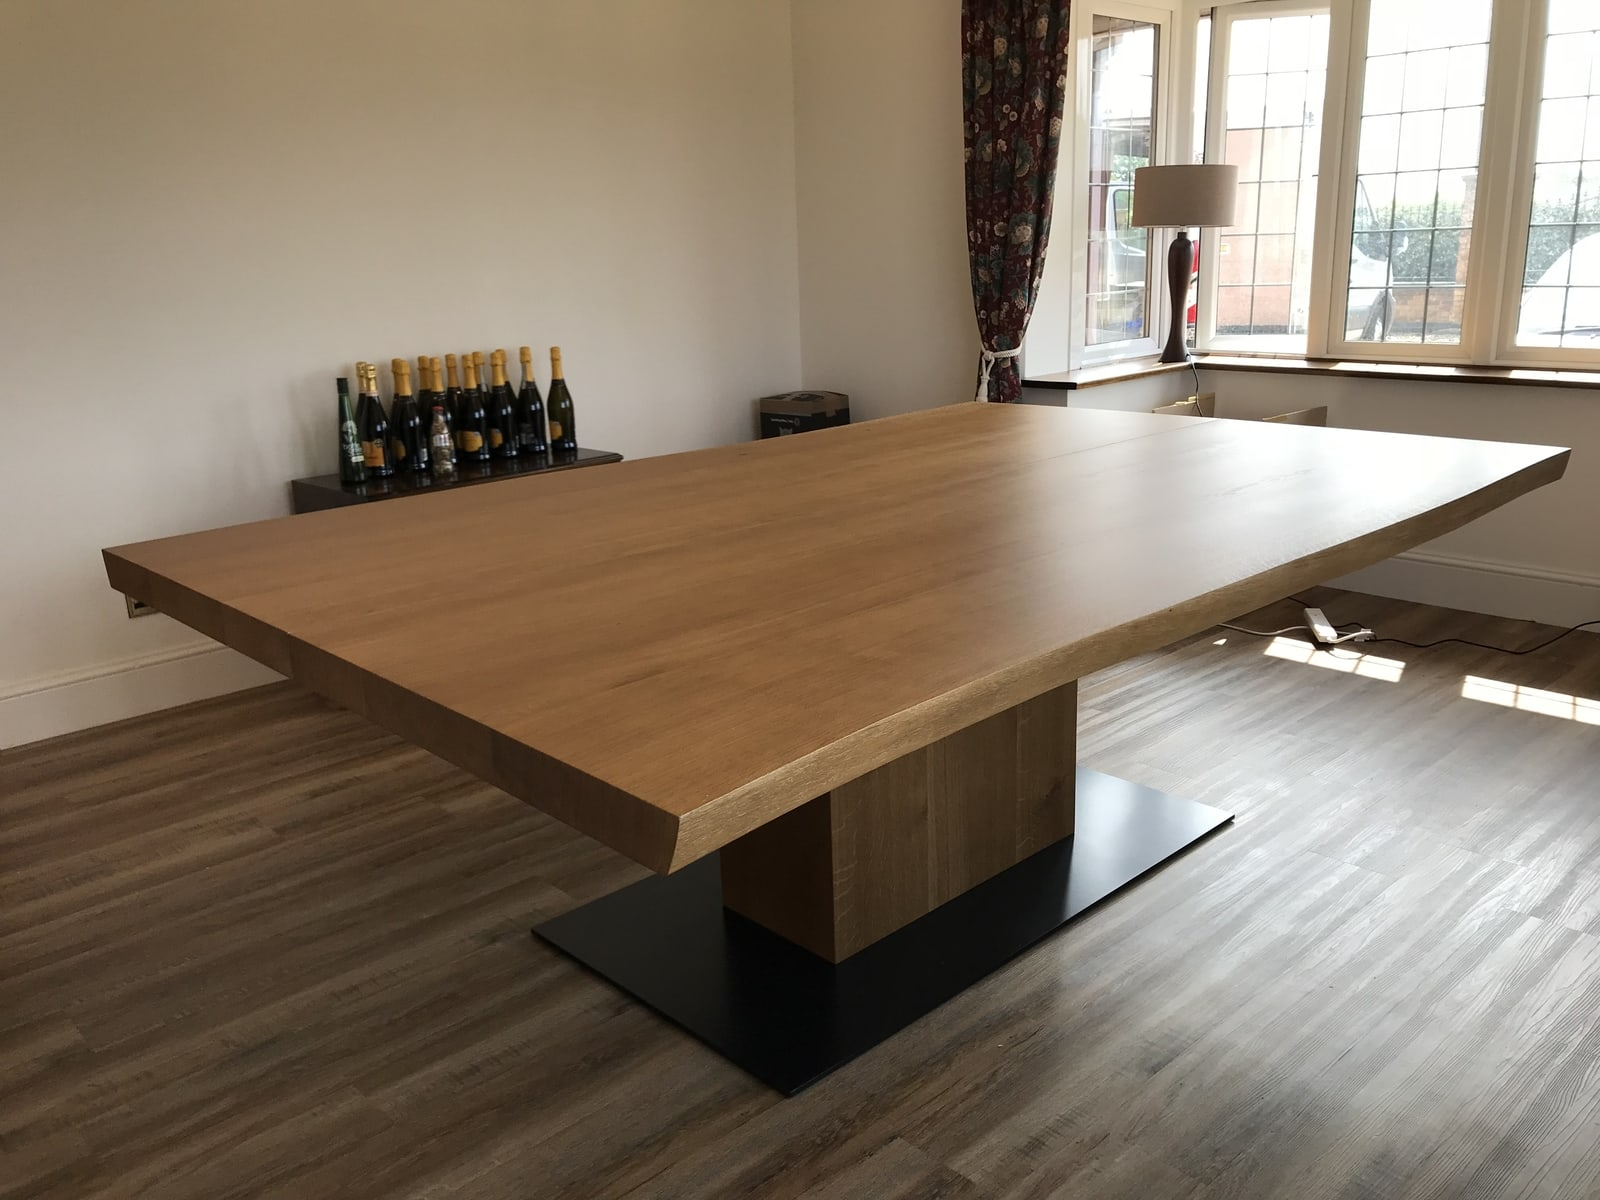 Bespoke oak dining table project 670 Abacus Tables image 1